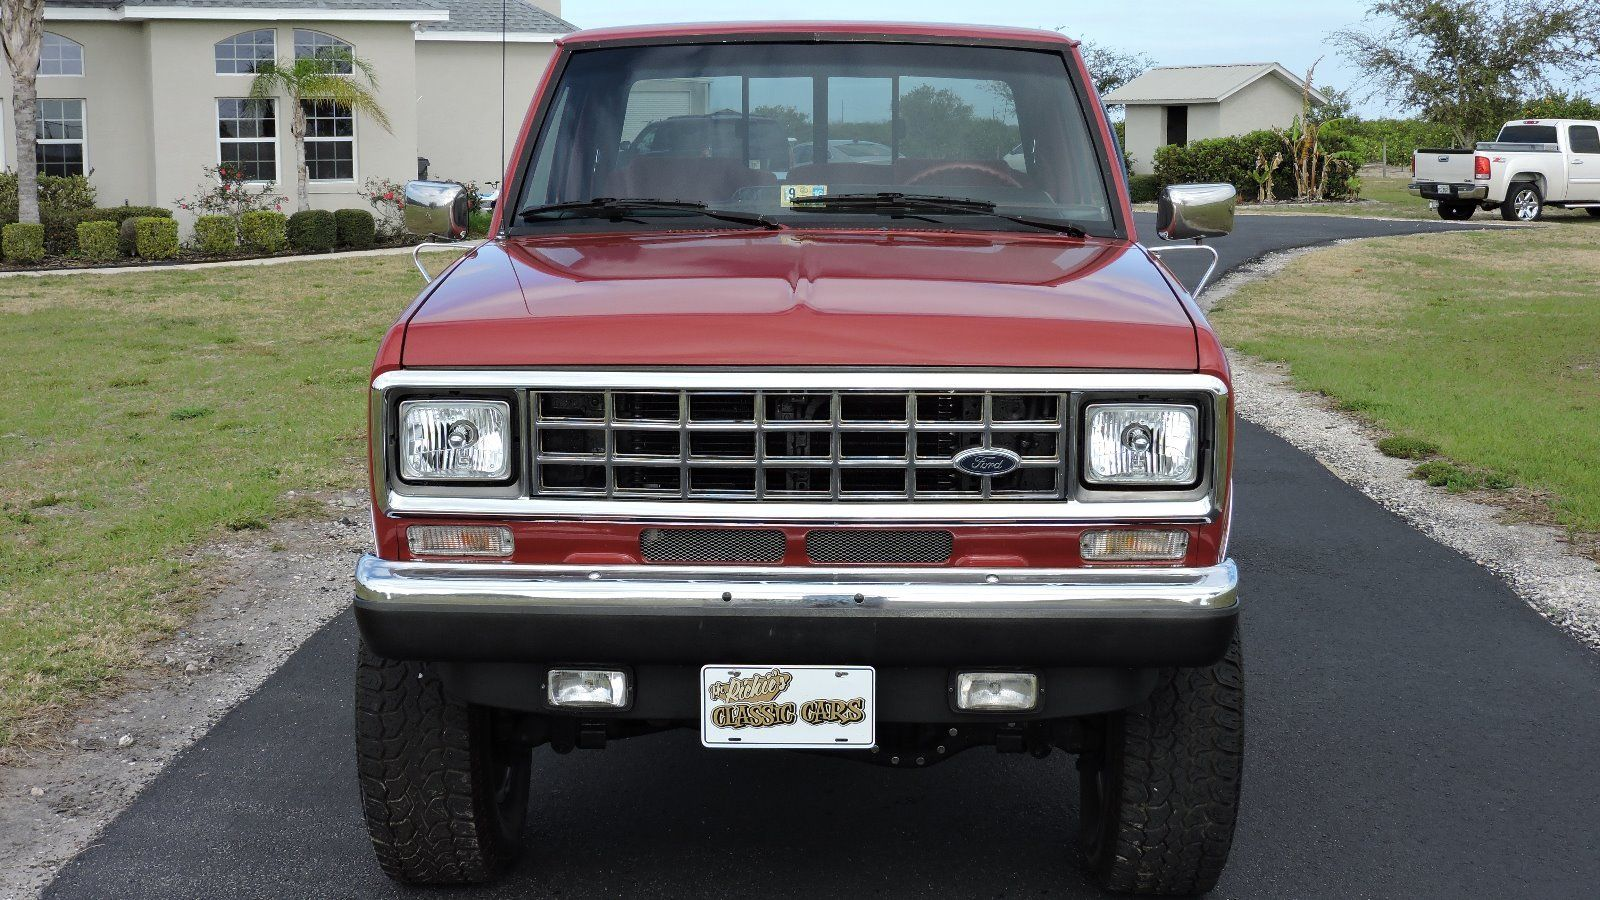 1988 Ford Ranger Xlt 4x4 Lwb V8 Show Truck With Over 30k Spent For 1954 F100 Report This Advert